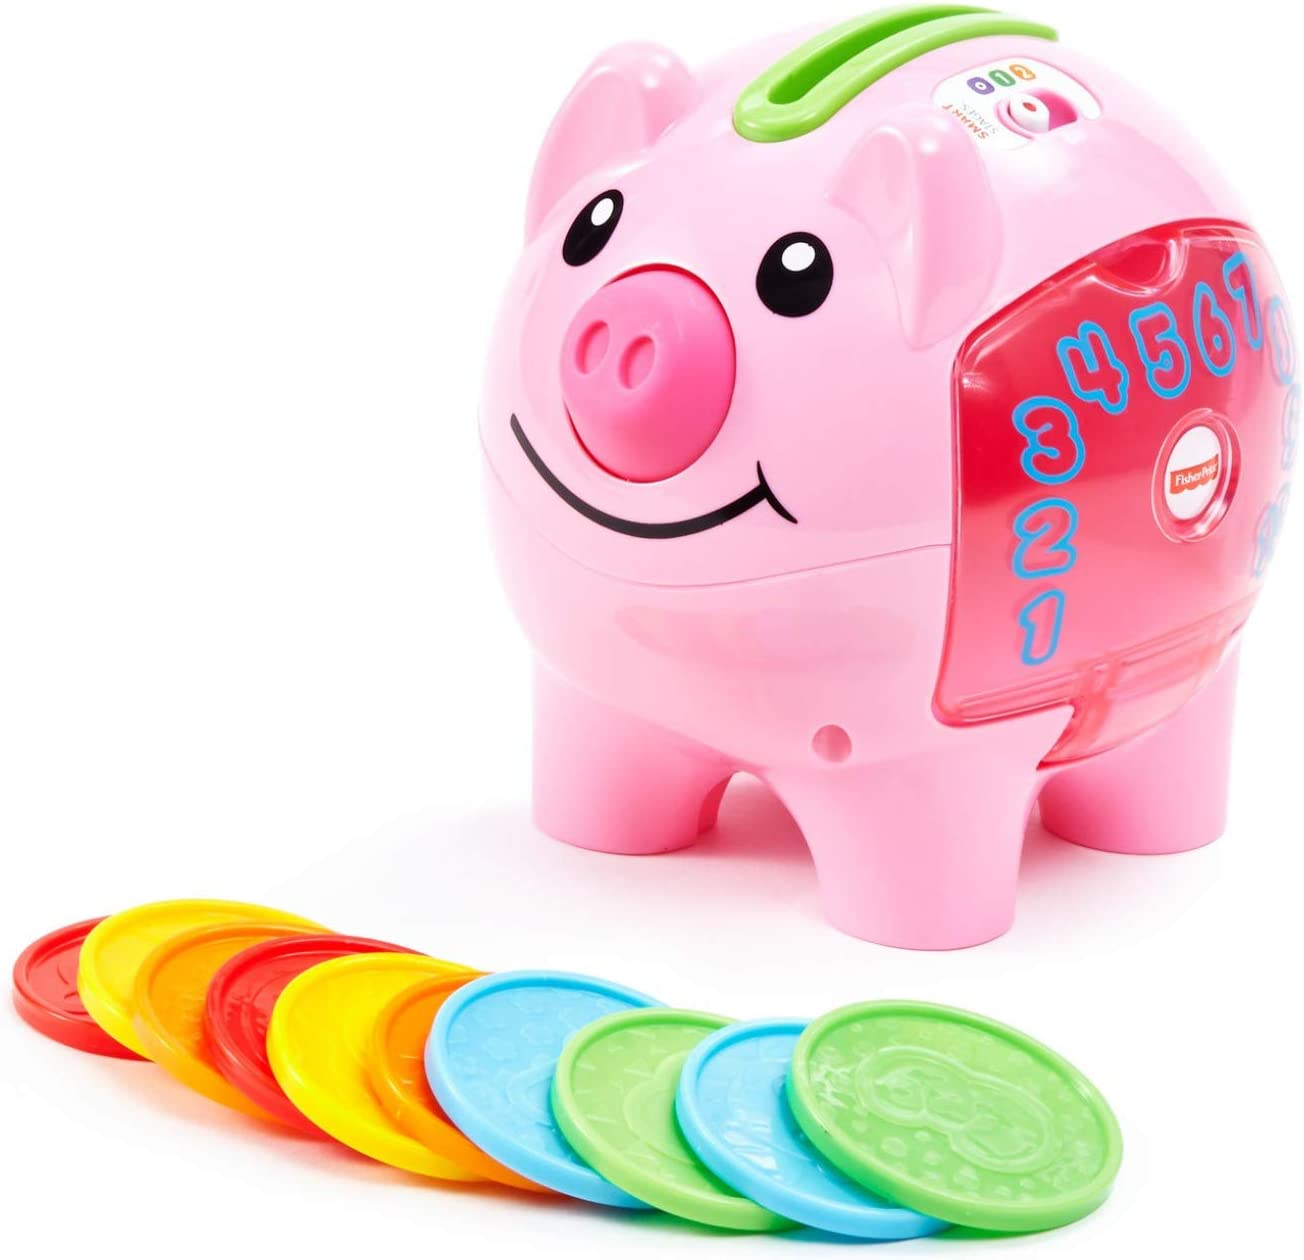 Top 10 Best Piggy Banks For Kids (2020 Reviews & Buying Guide) 10